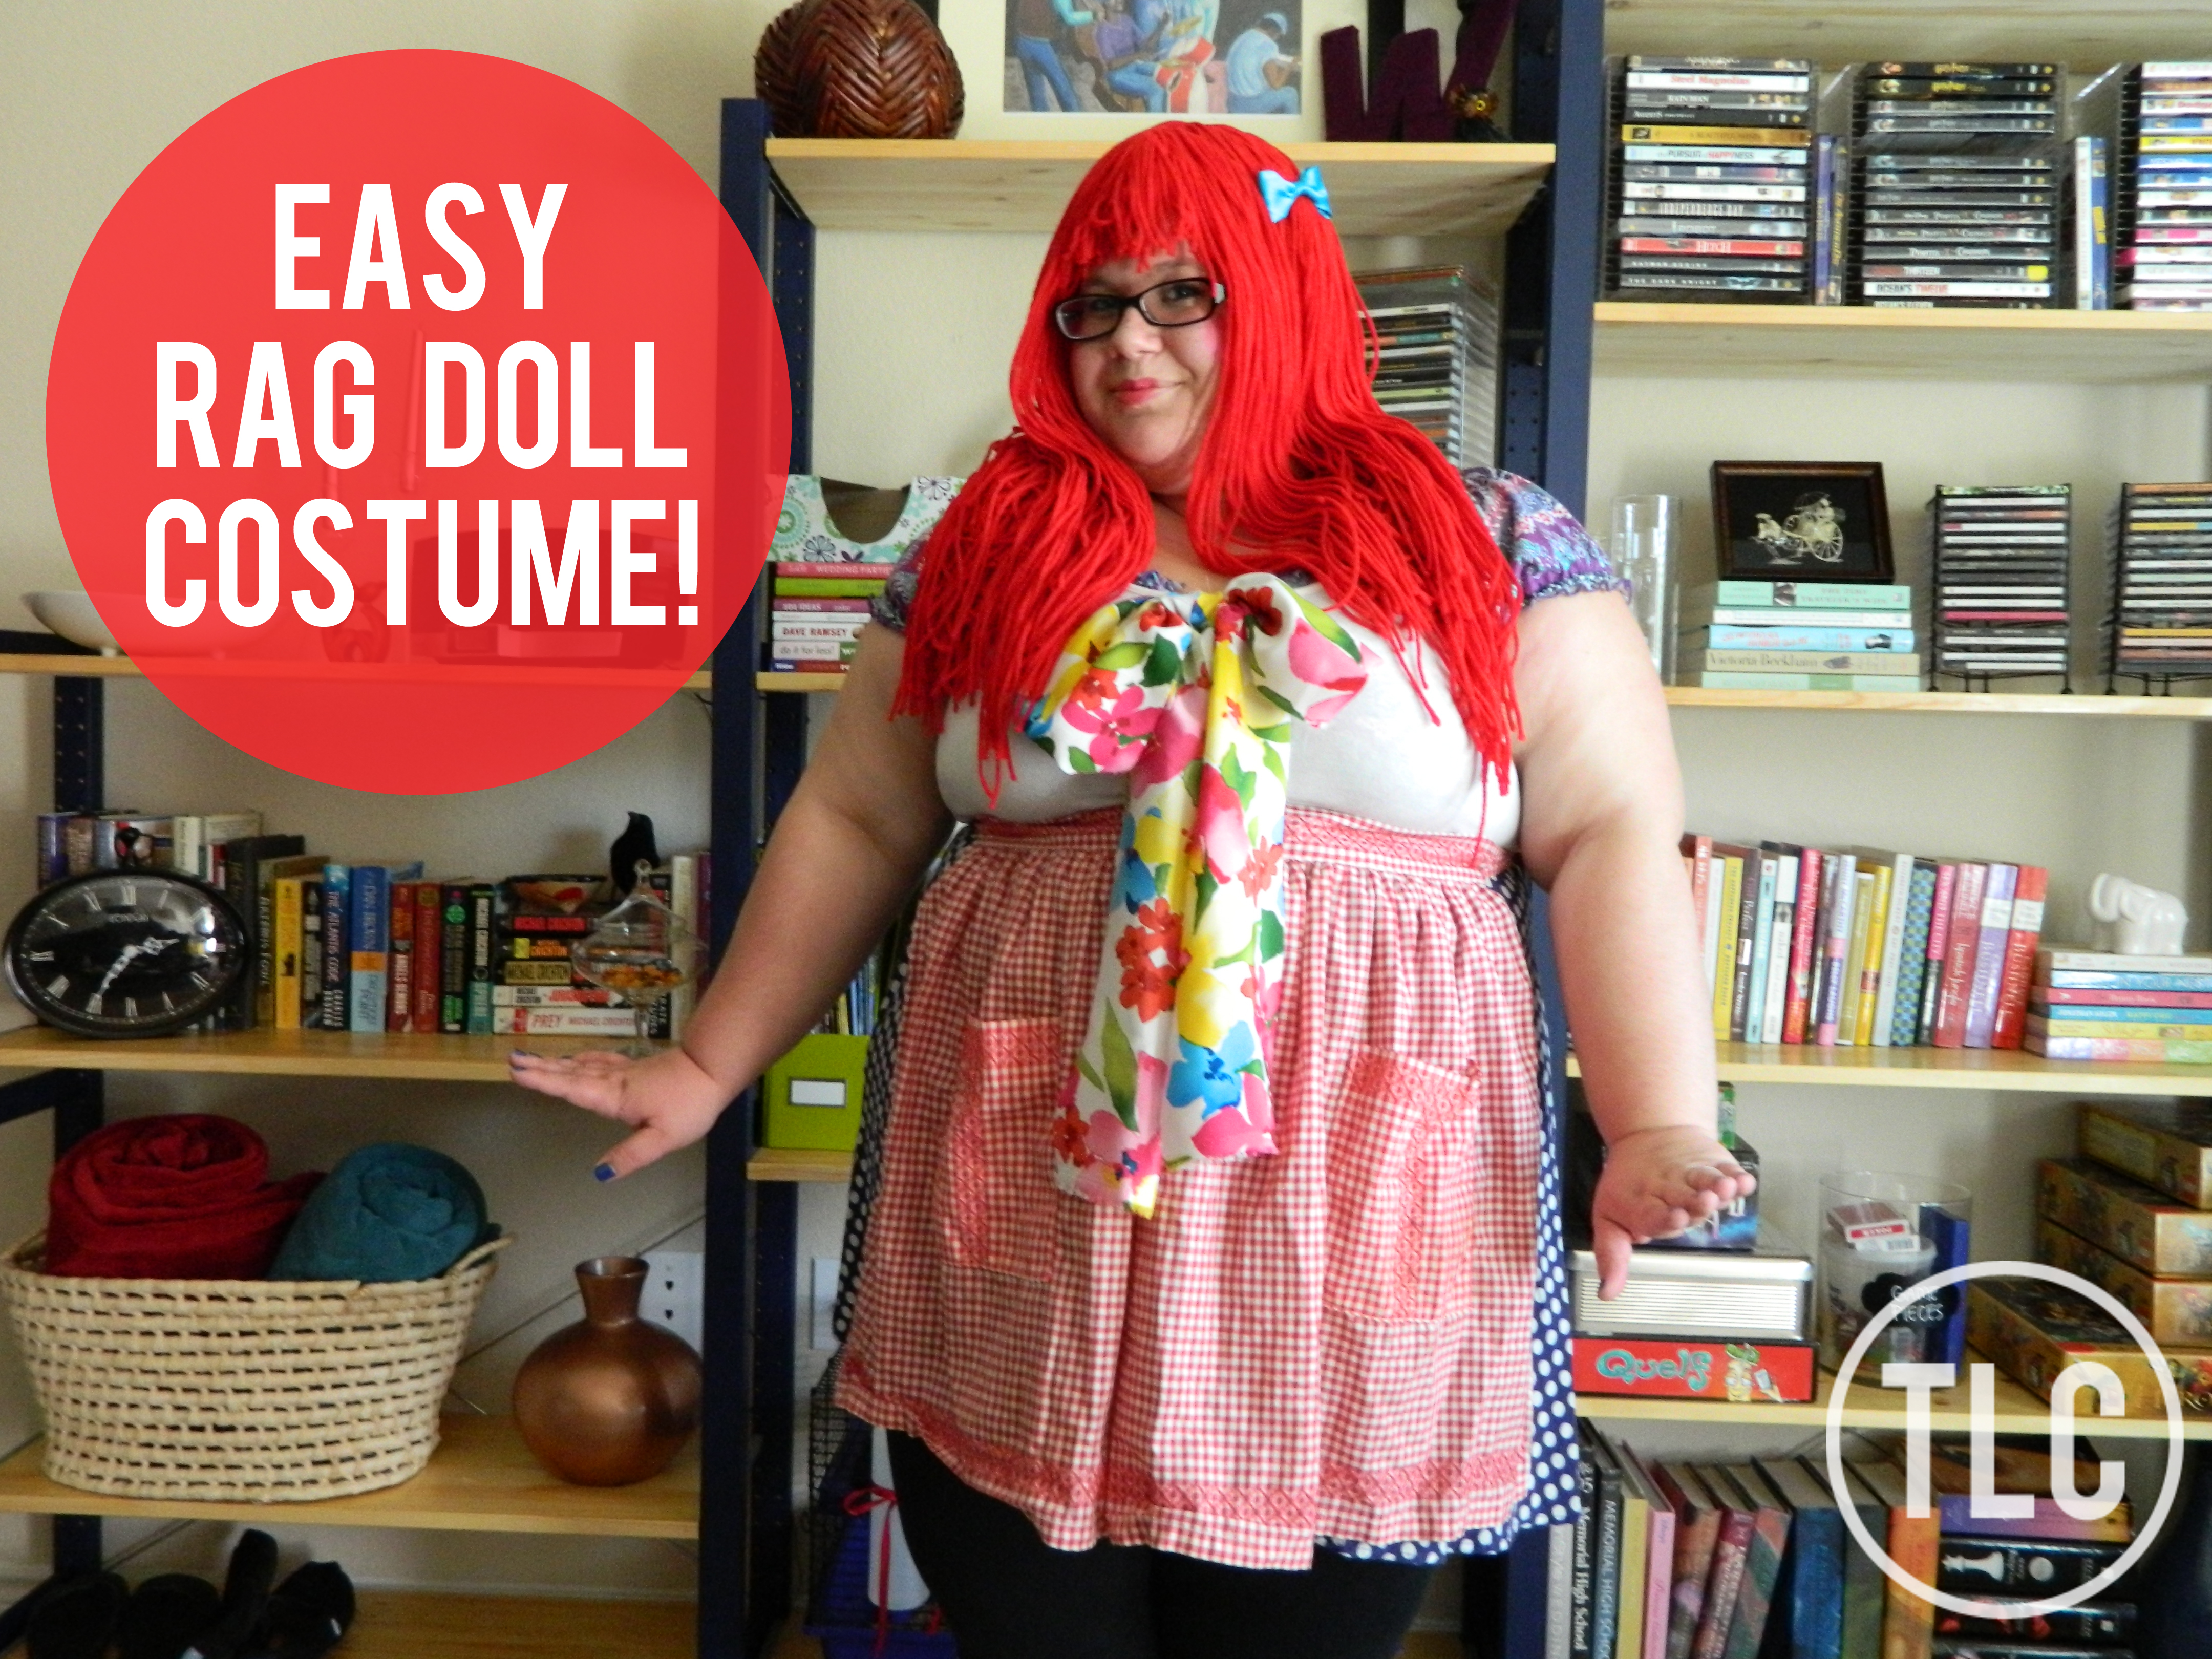 Celebrate The Holidays Simple And Cheap Rag Doll Costume Two Live